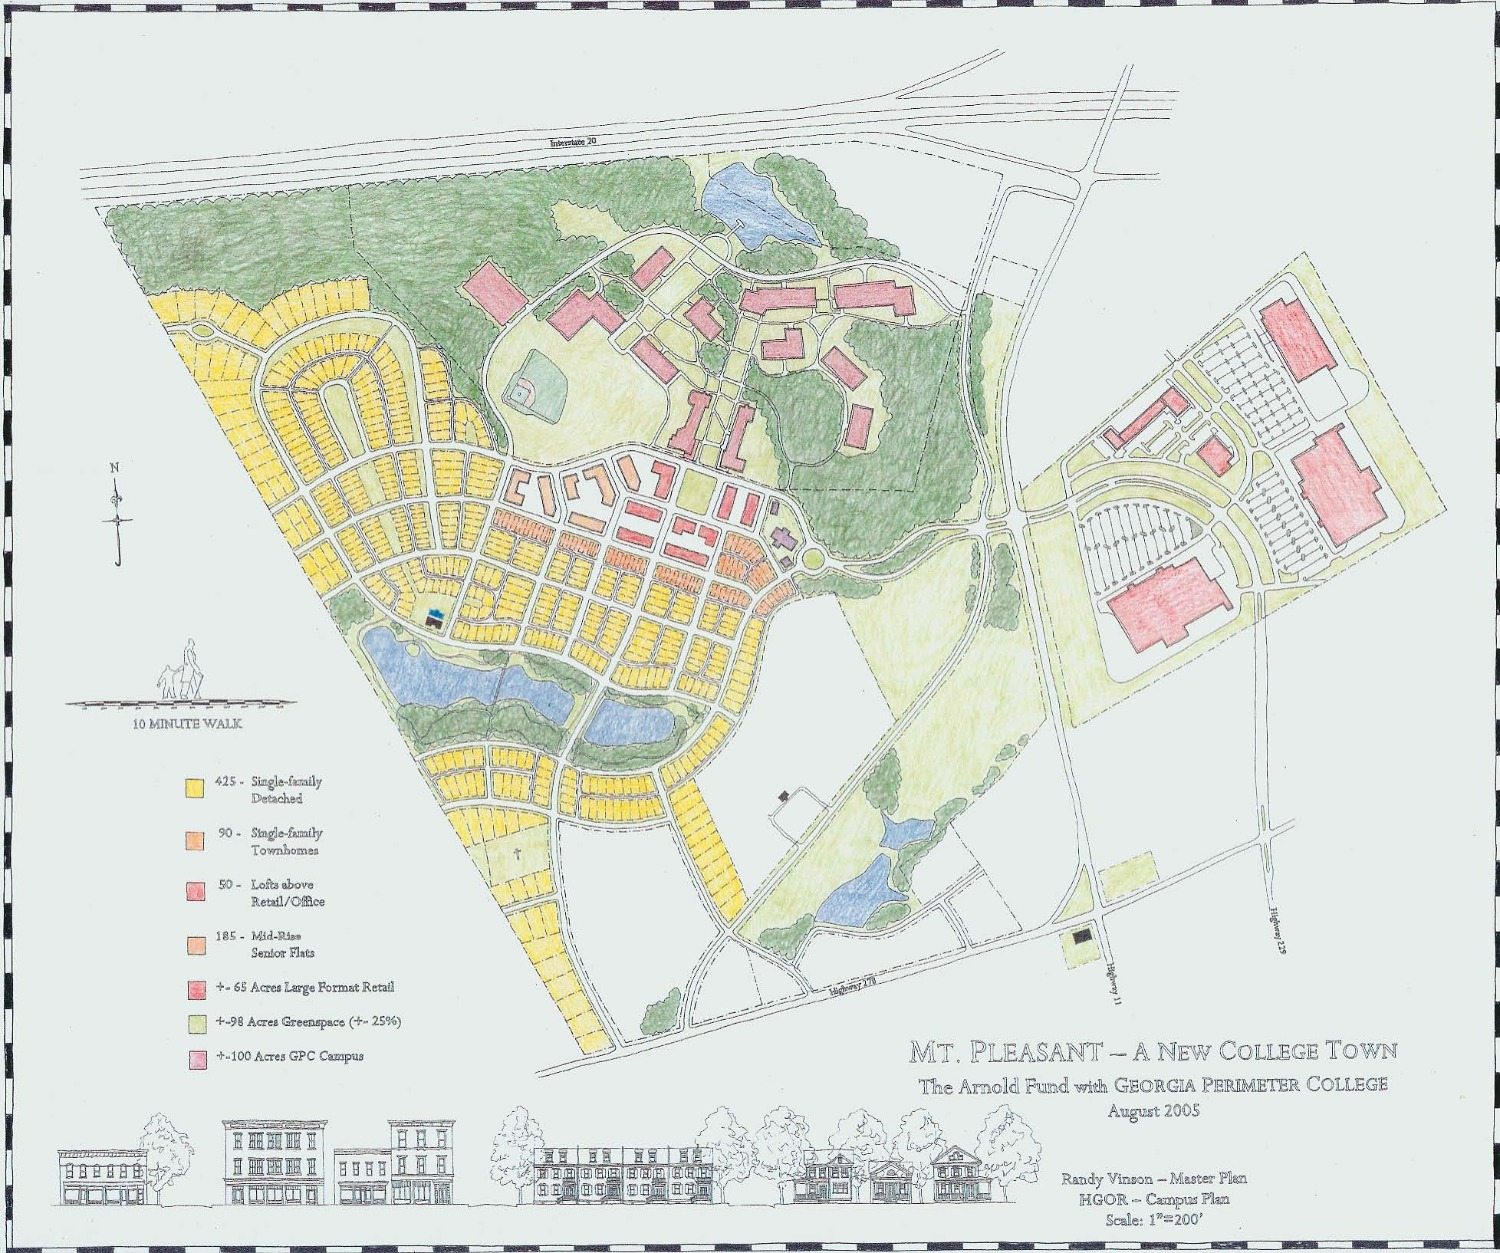 Mt. Pleasant Master Plan